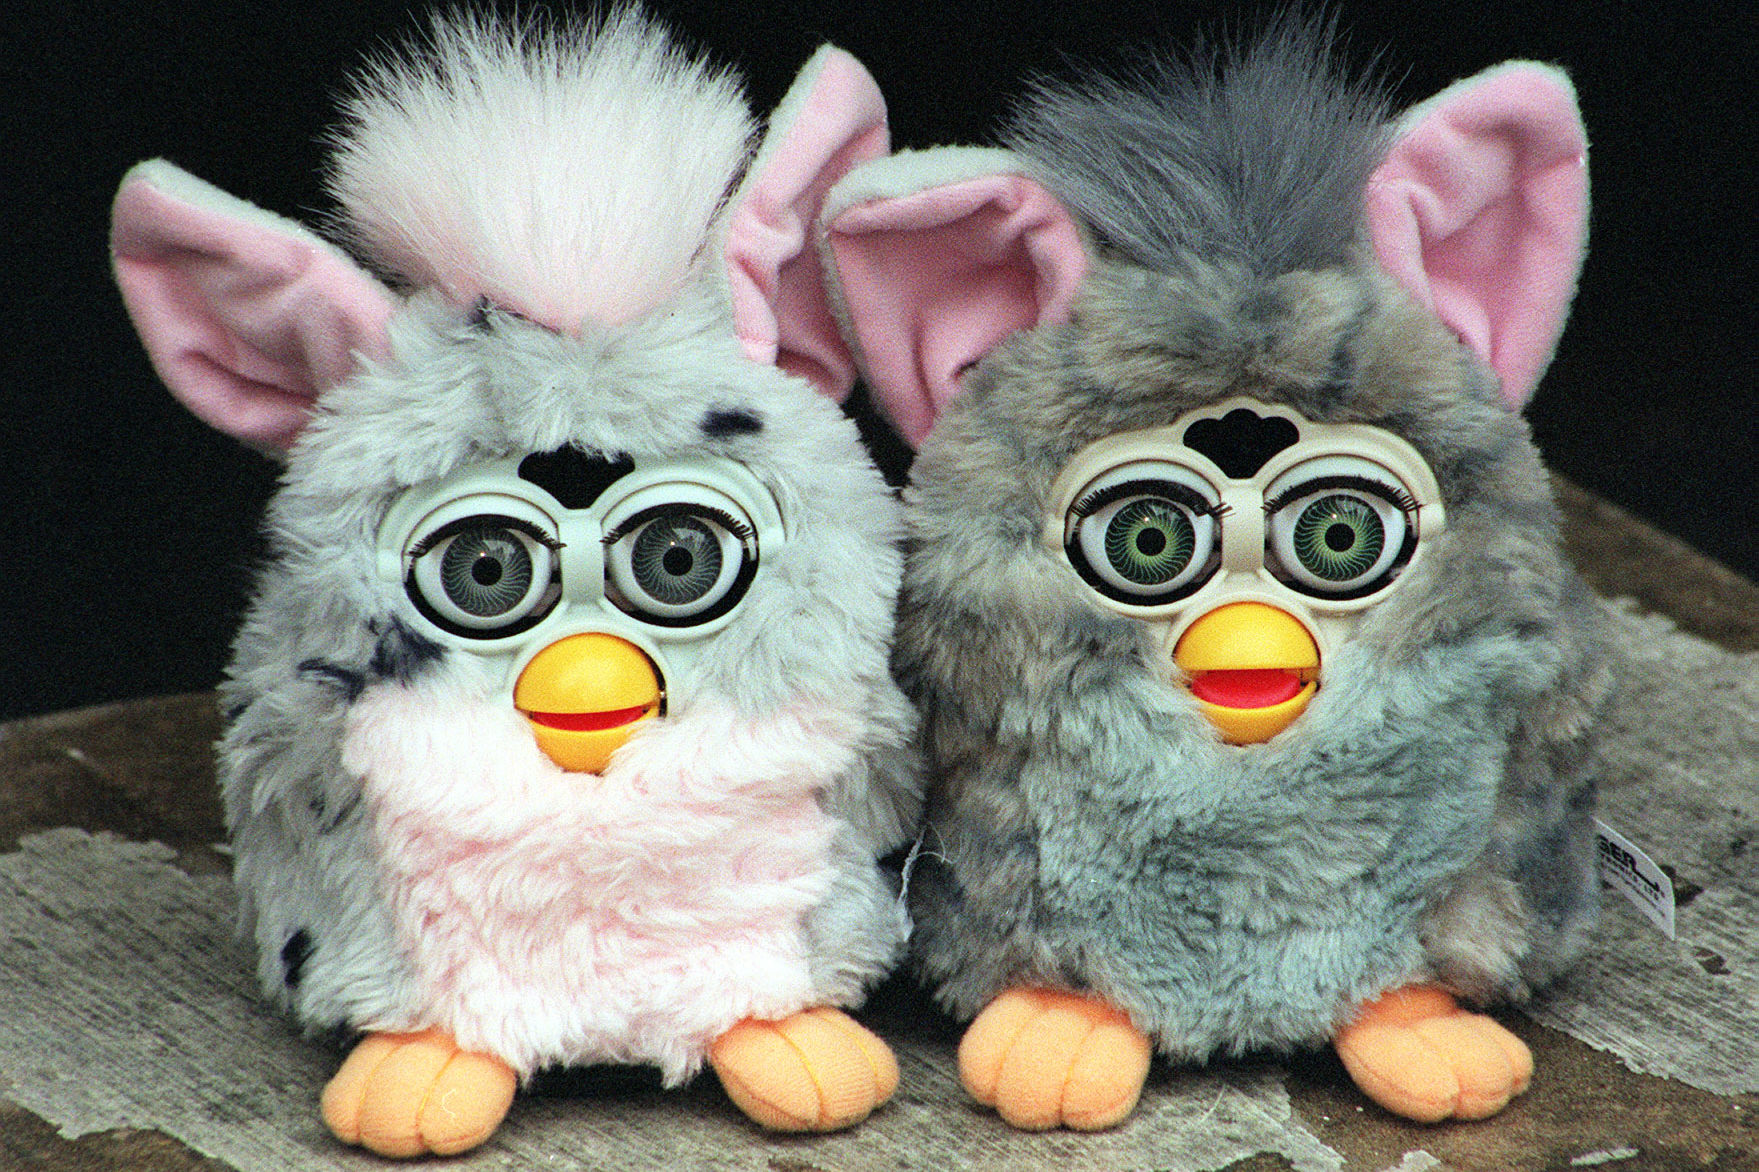 Your Creepy Old Furby Might Be Worth Big Bucks Now